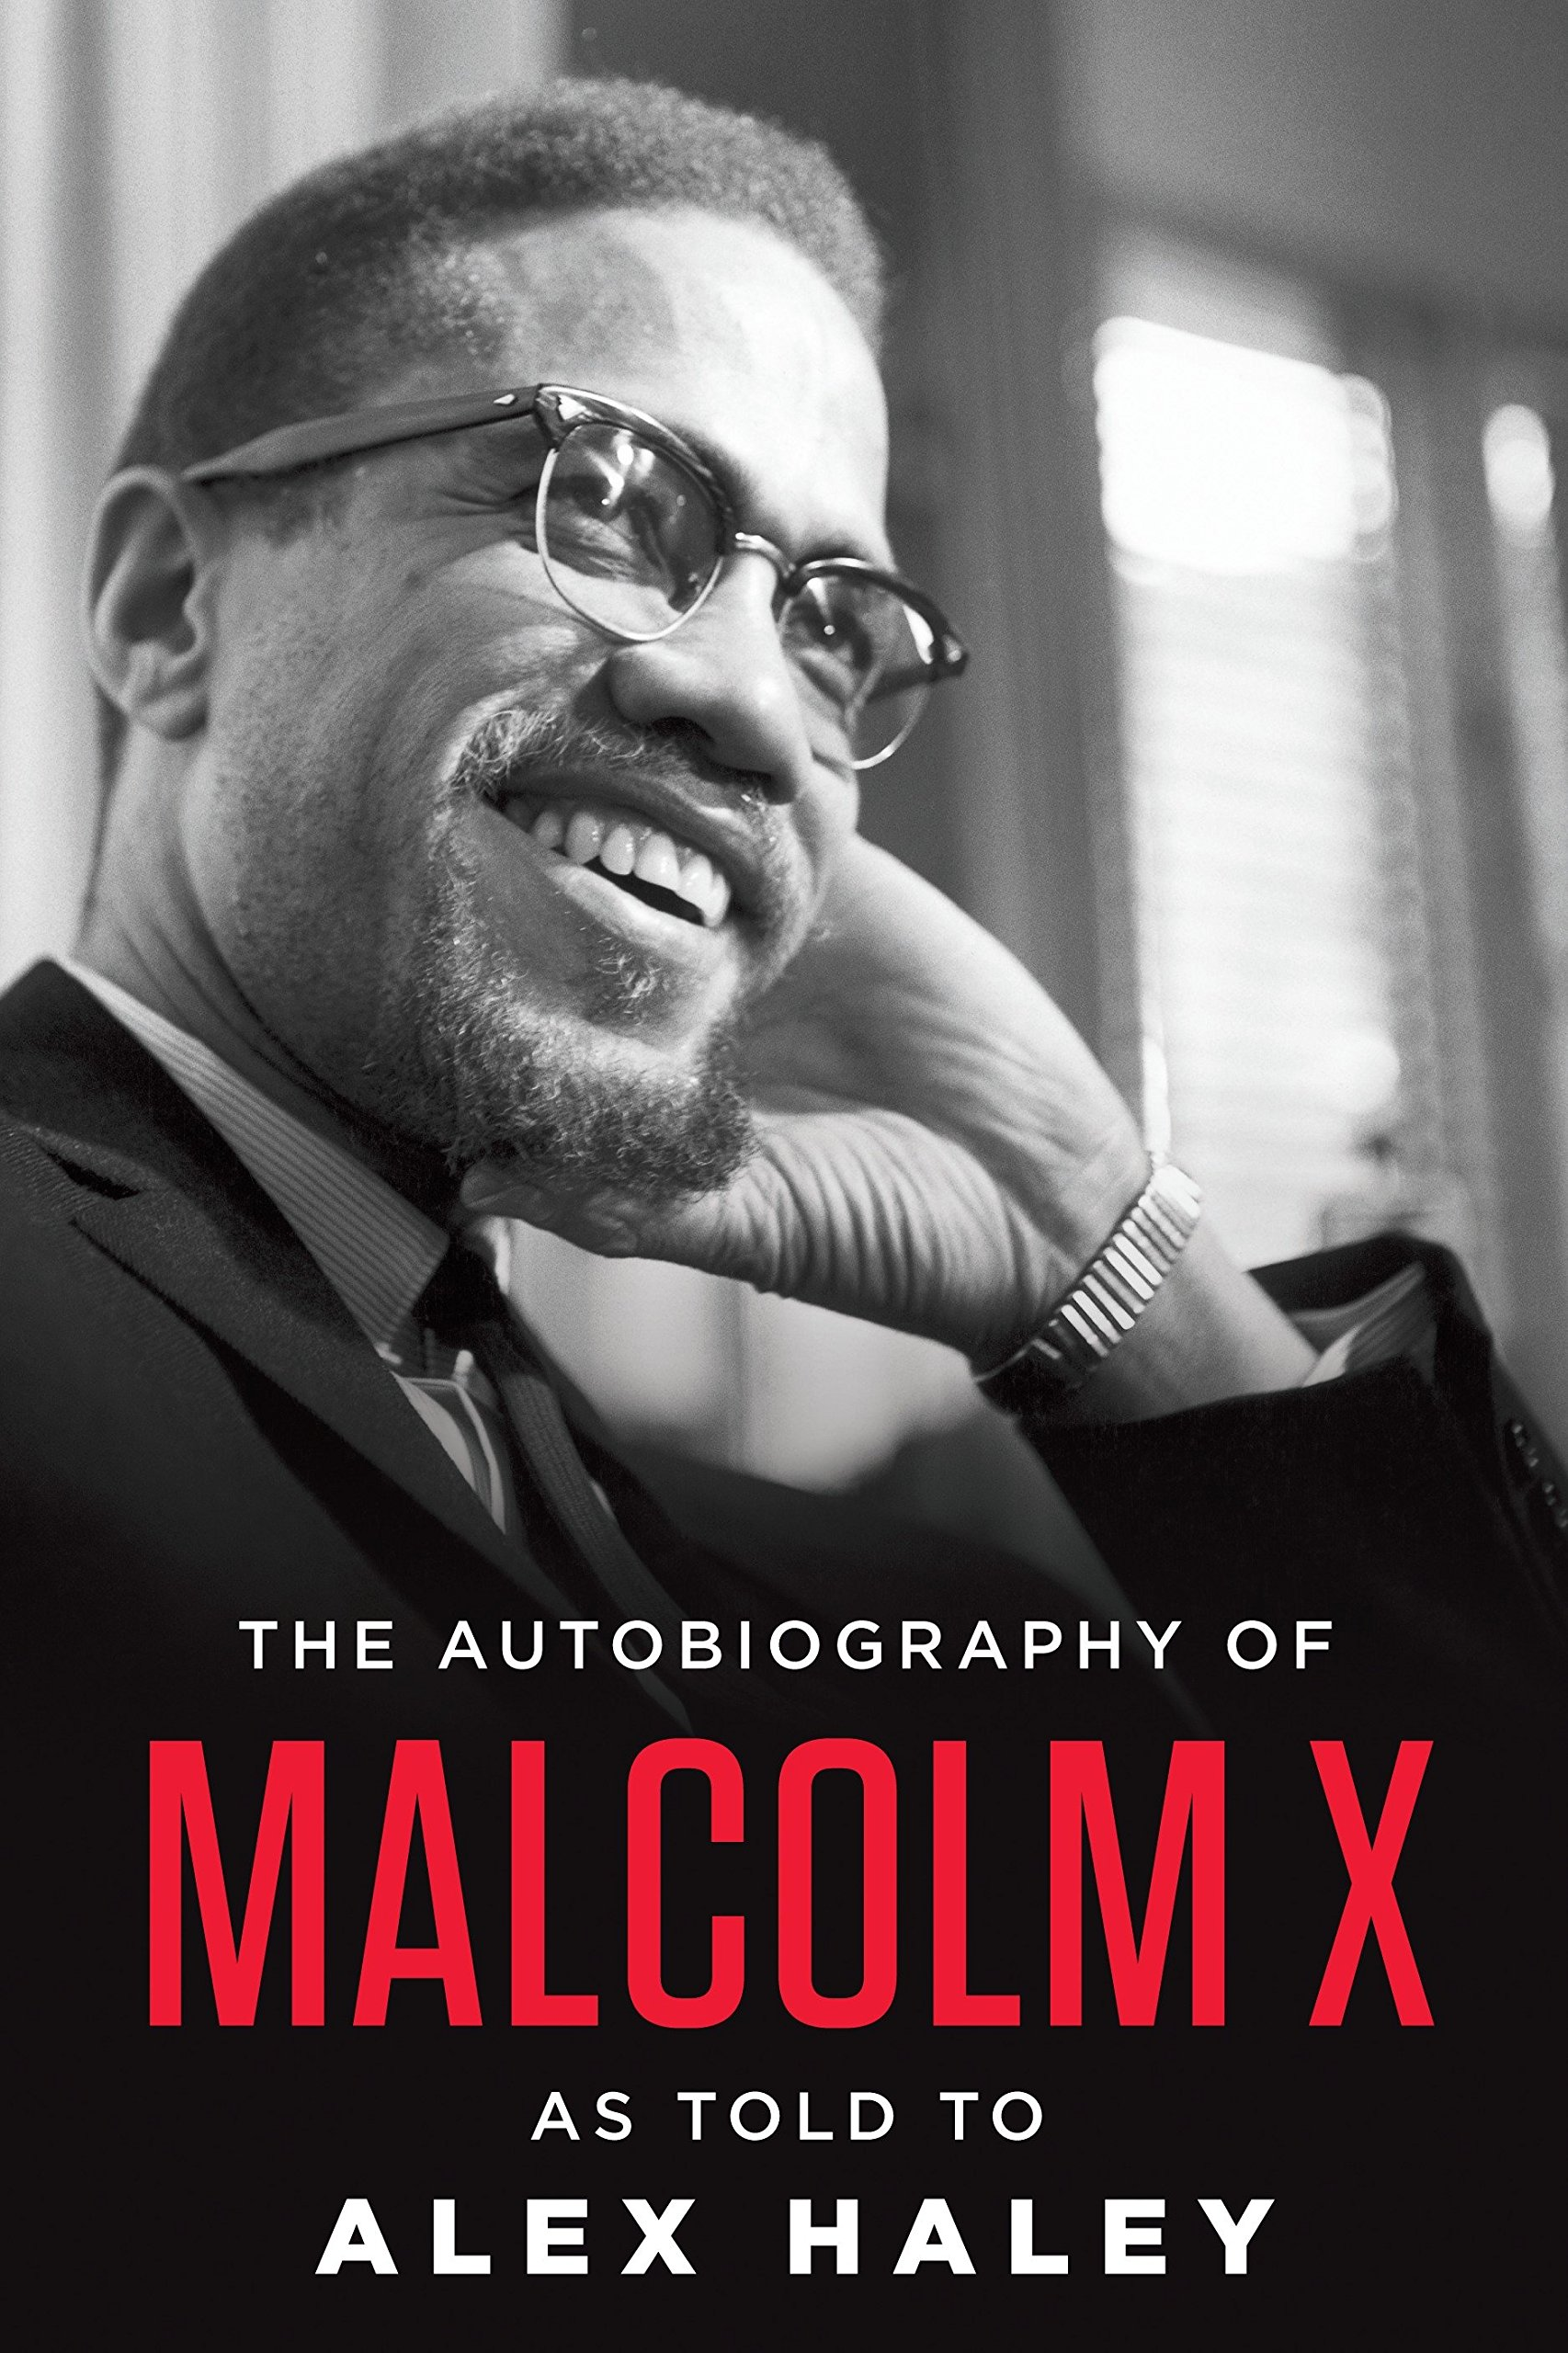 Download The Autobiography of Malcolm X (As told to Alex Haley) ebook